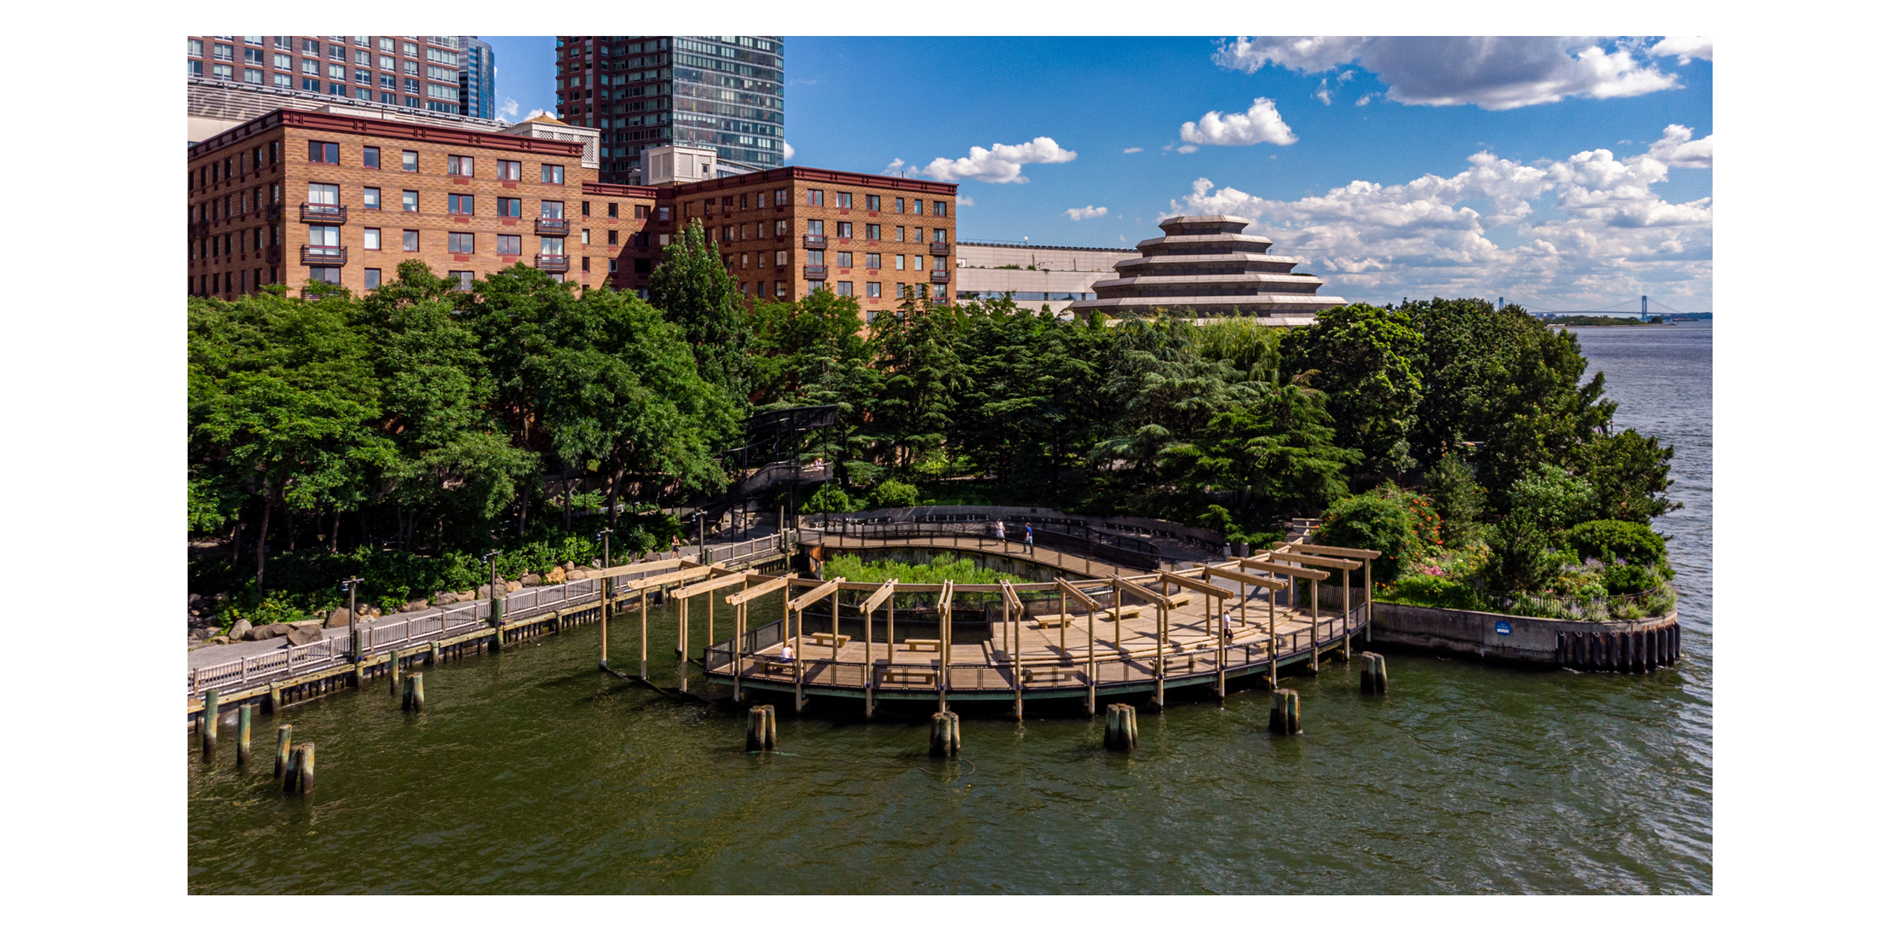 Landslide 2020: Women Take the Lead - Landslide 2020 South Cove site commissioned photography